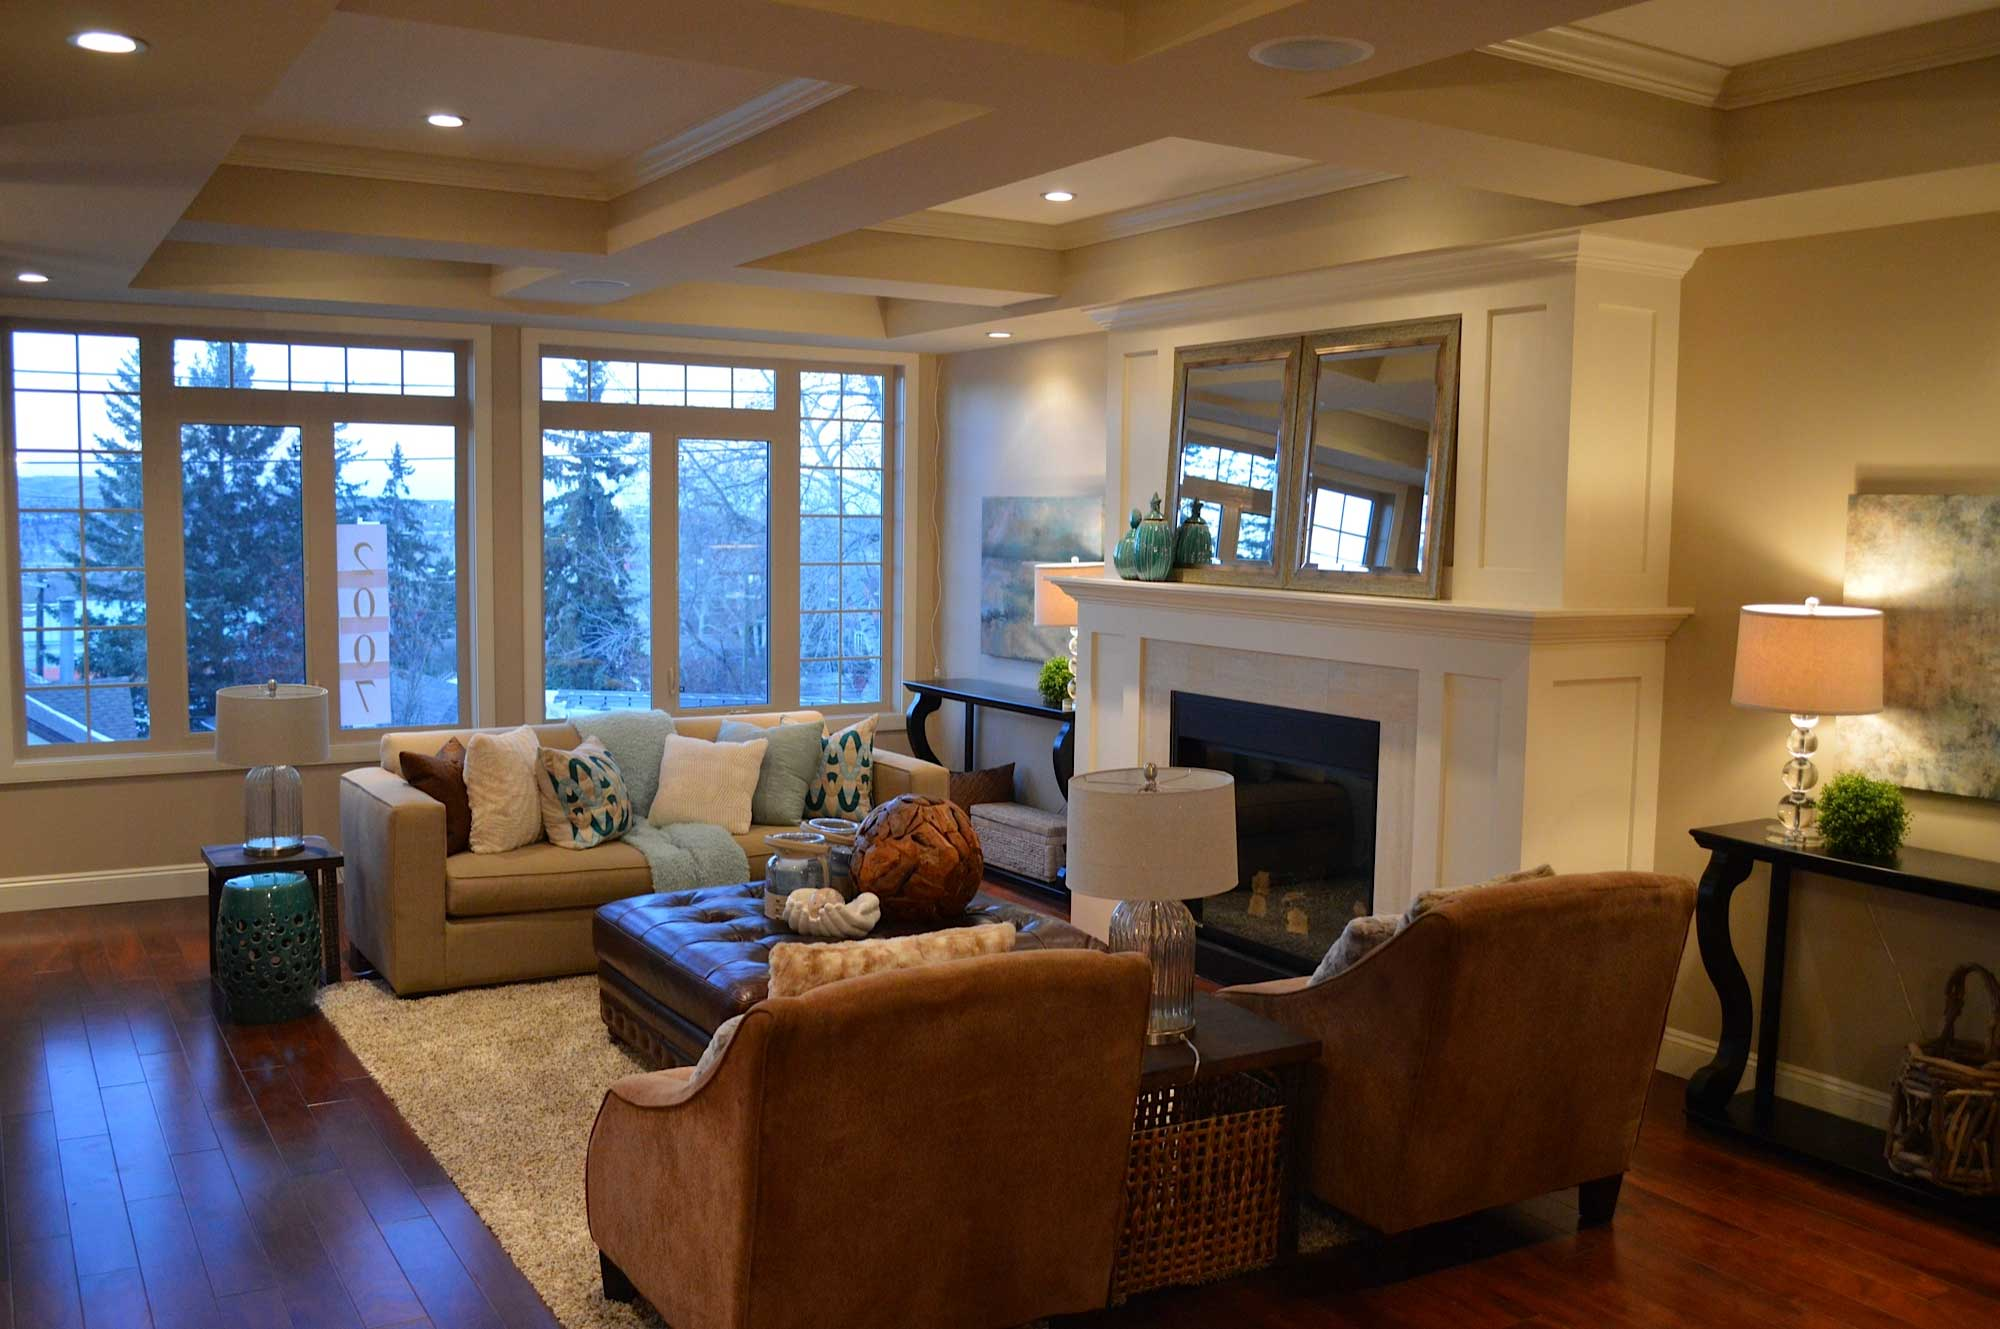 Duplex family room remodel by Style Developments in Calgary Alberta